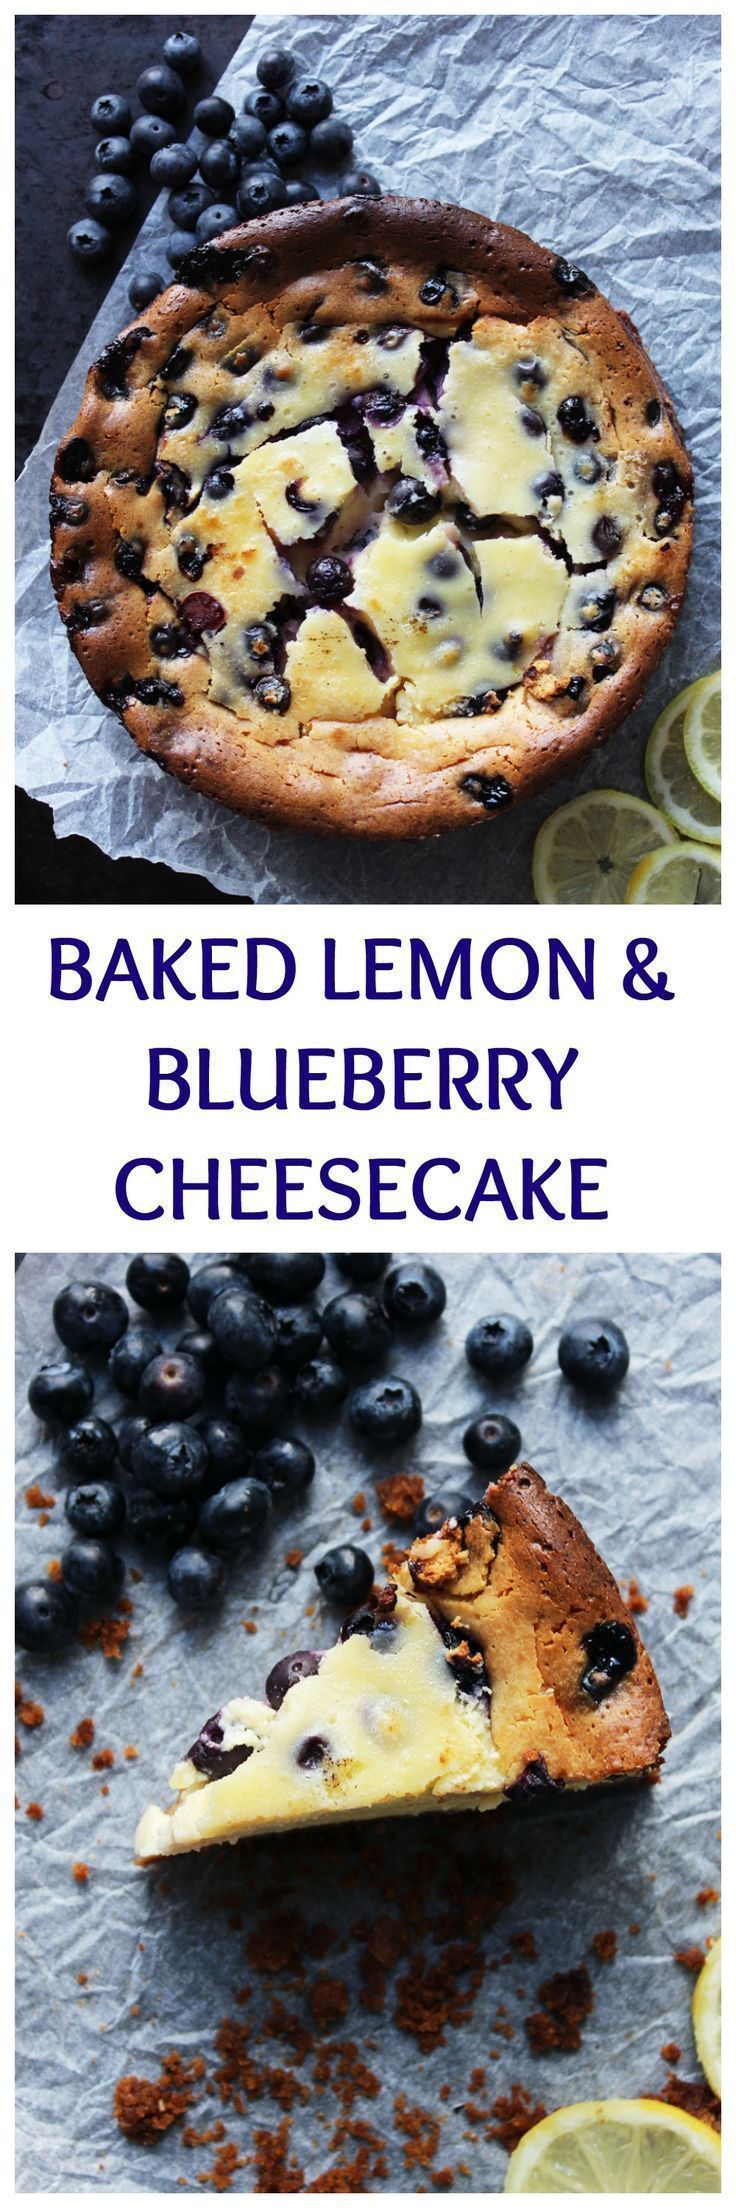 This easy Baked Lemon & Blueberry Cheesecake is super creamy and packed full of the flavours of summer. Make ahead of time for a hassle free dessert Cheesecake Recipe   Lemon & Blueberry Recipes   Make Ahead Desserts   Easy cheesecake recipe #lemoncheesecake #blueberrycheesecake #easycheesecakerecipe